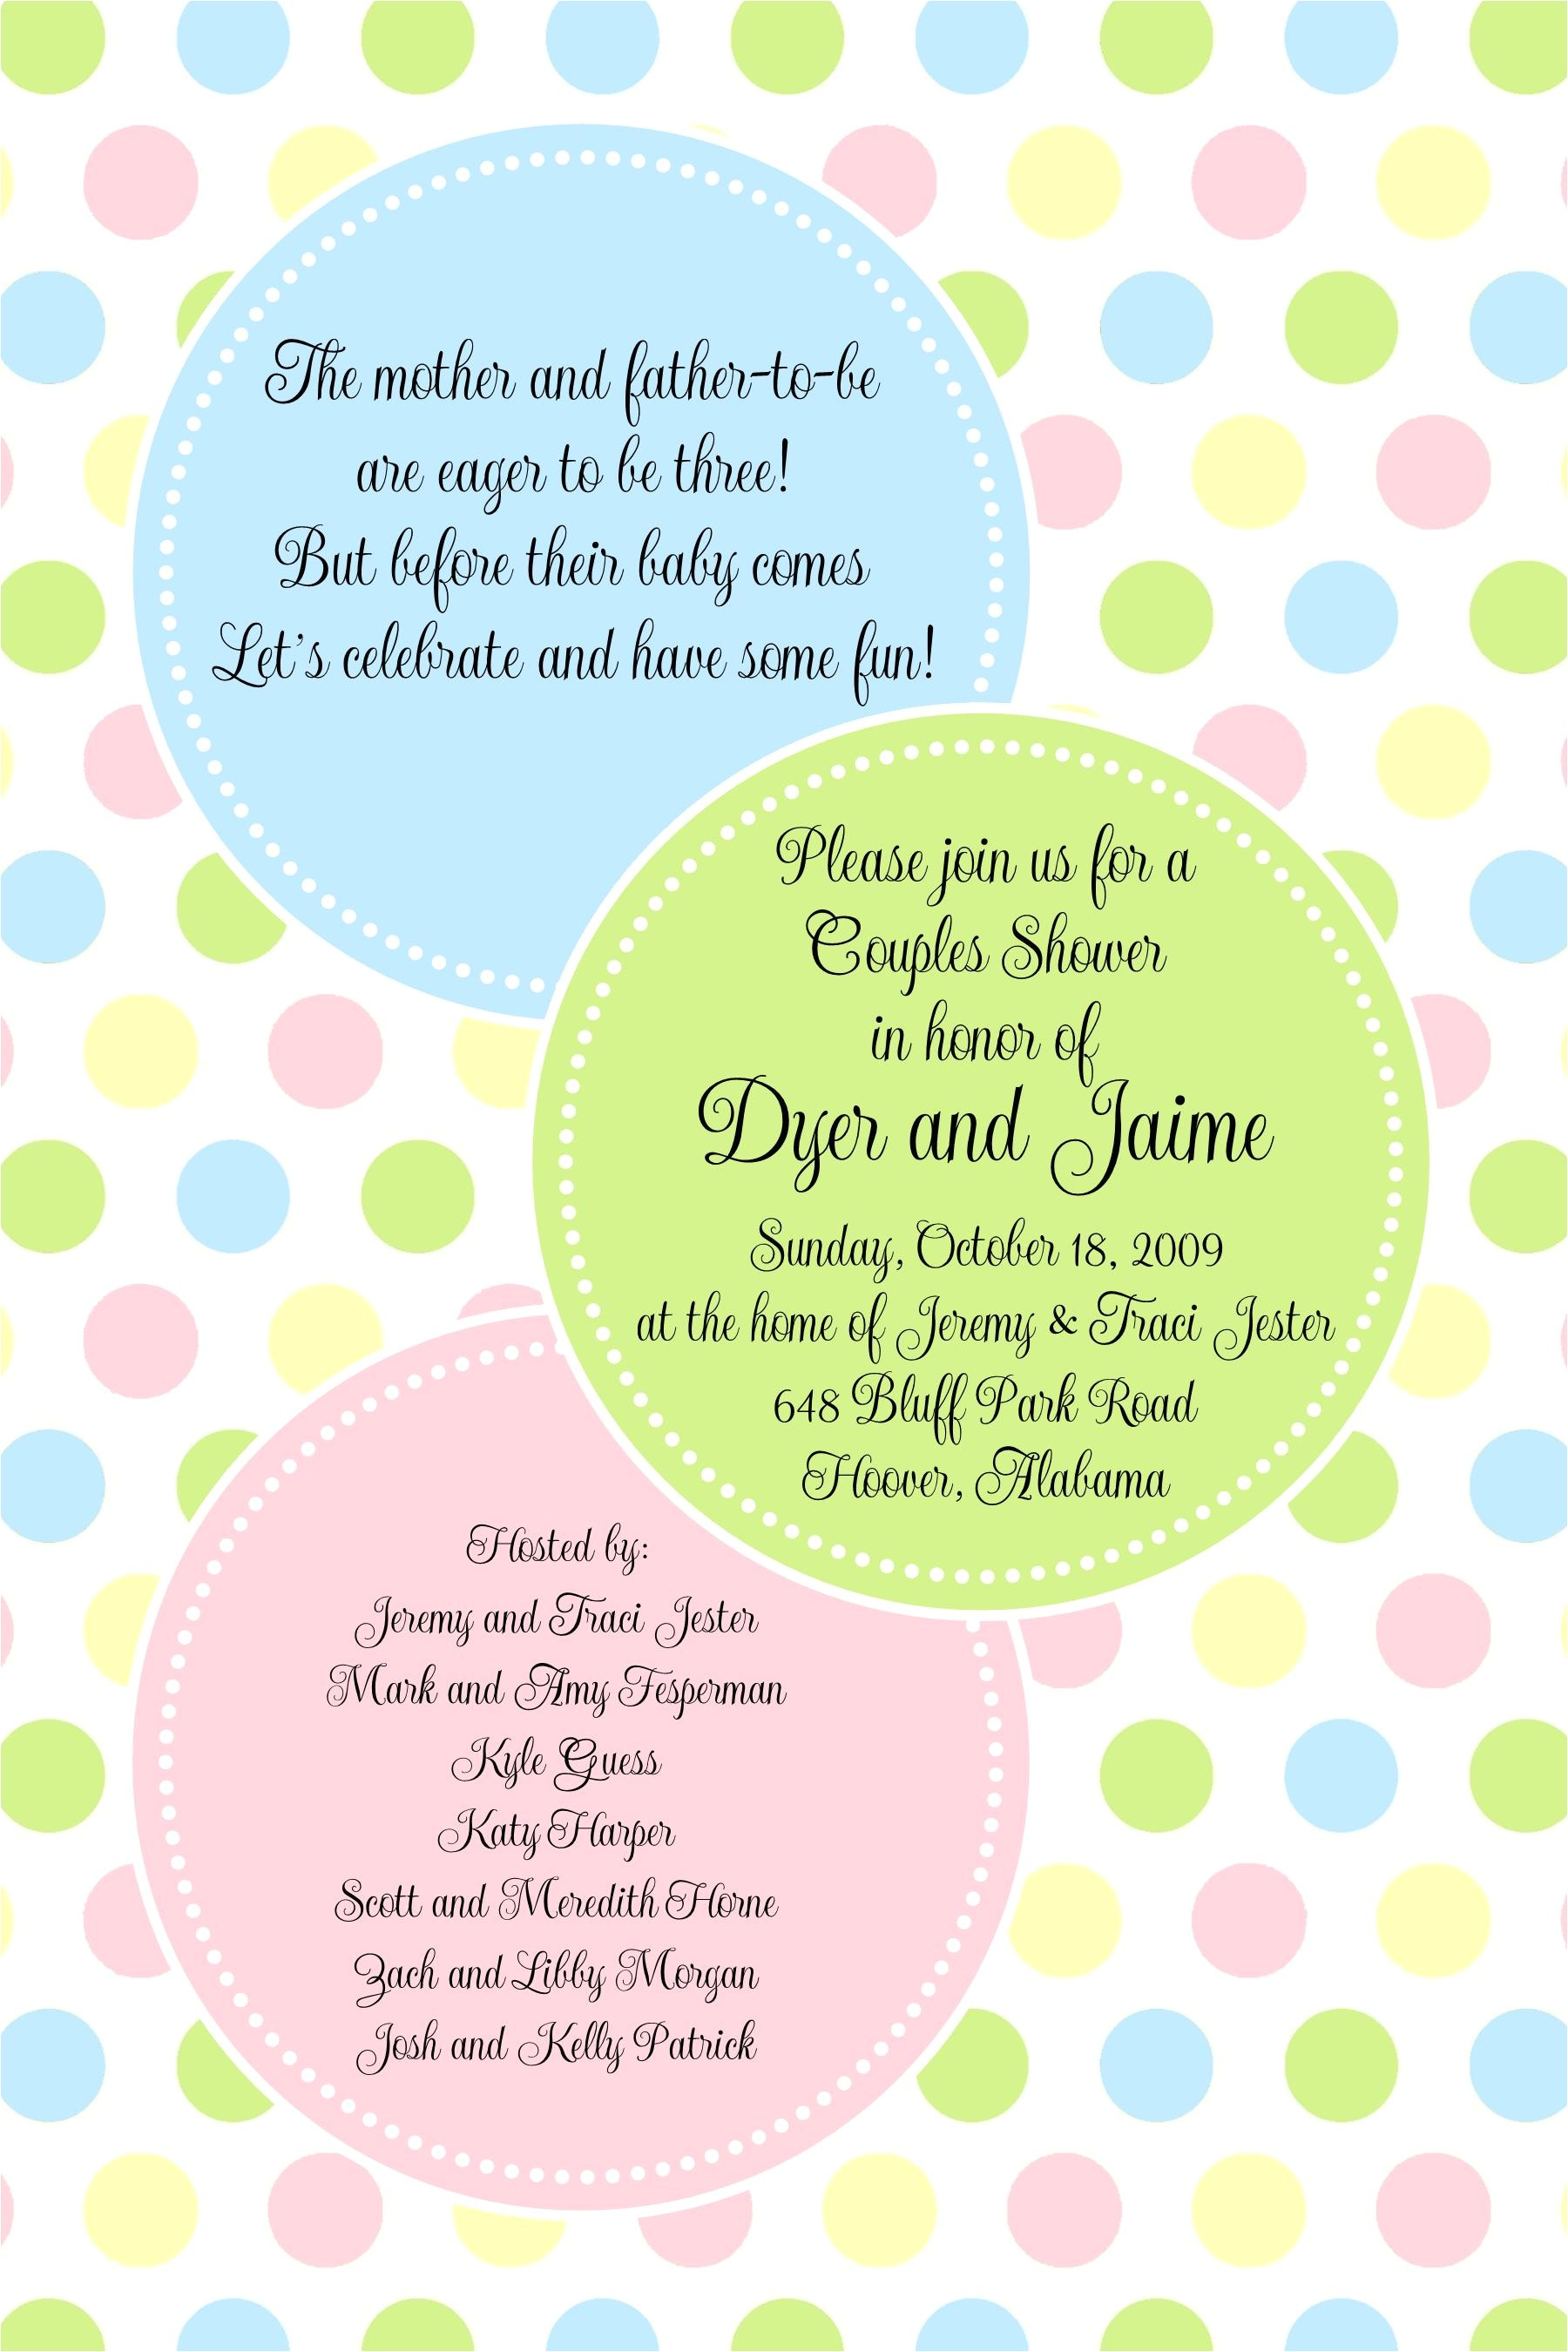 how to invitations for baby shower templates looking design the silverlininginvitations